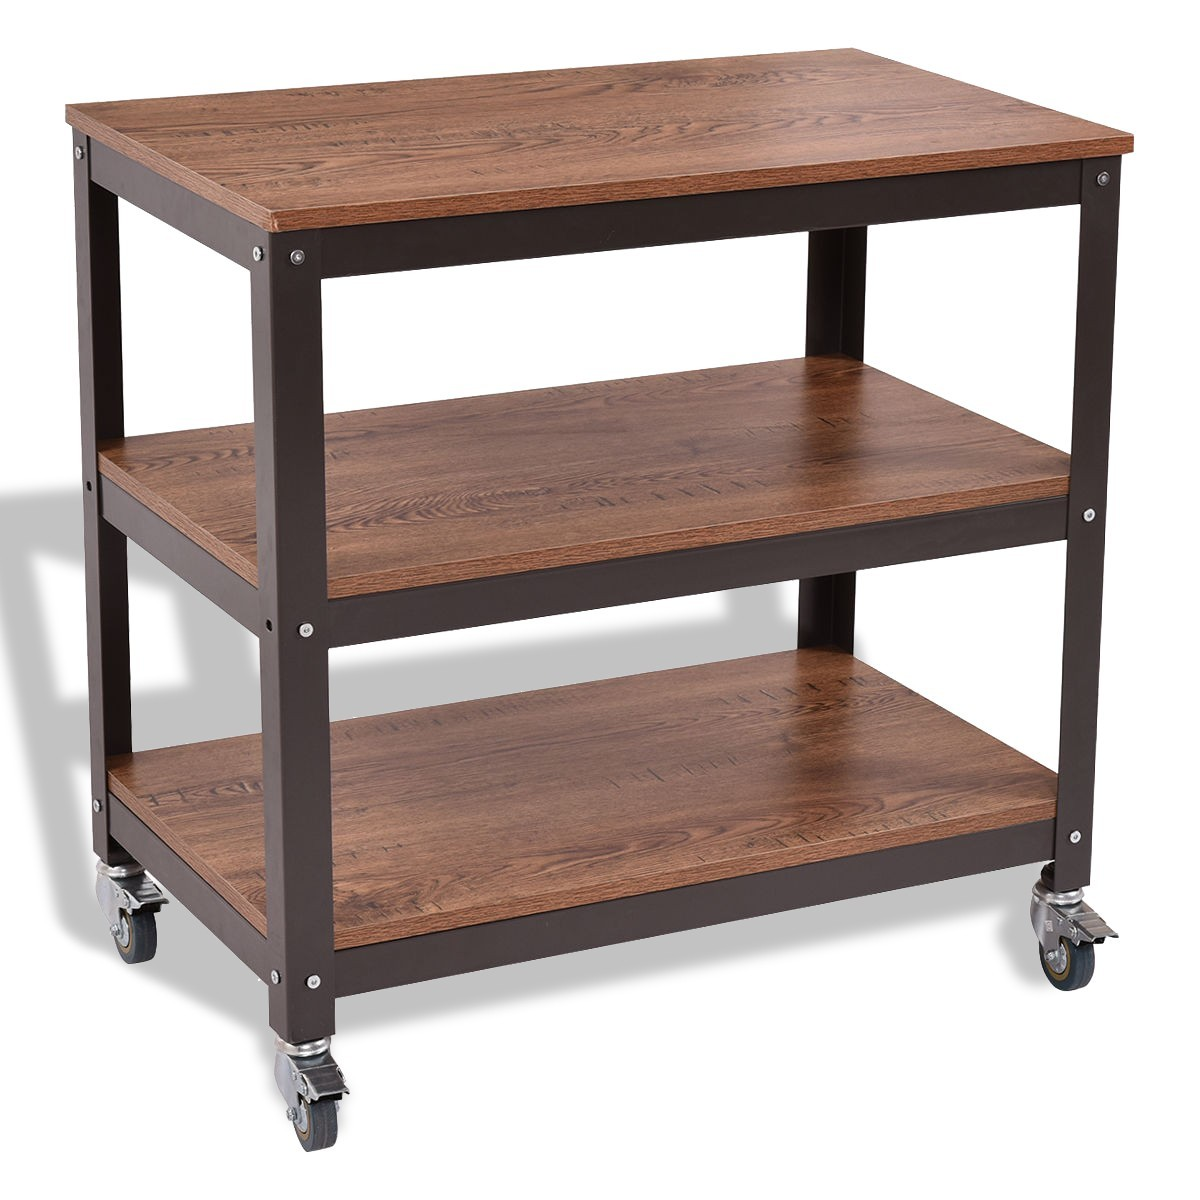 3 Tiers Wood Rolling Cart Sturdy Display Shelf